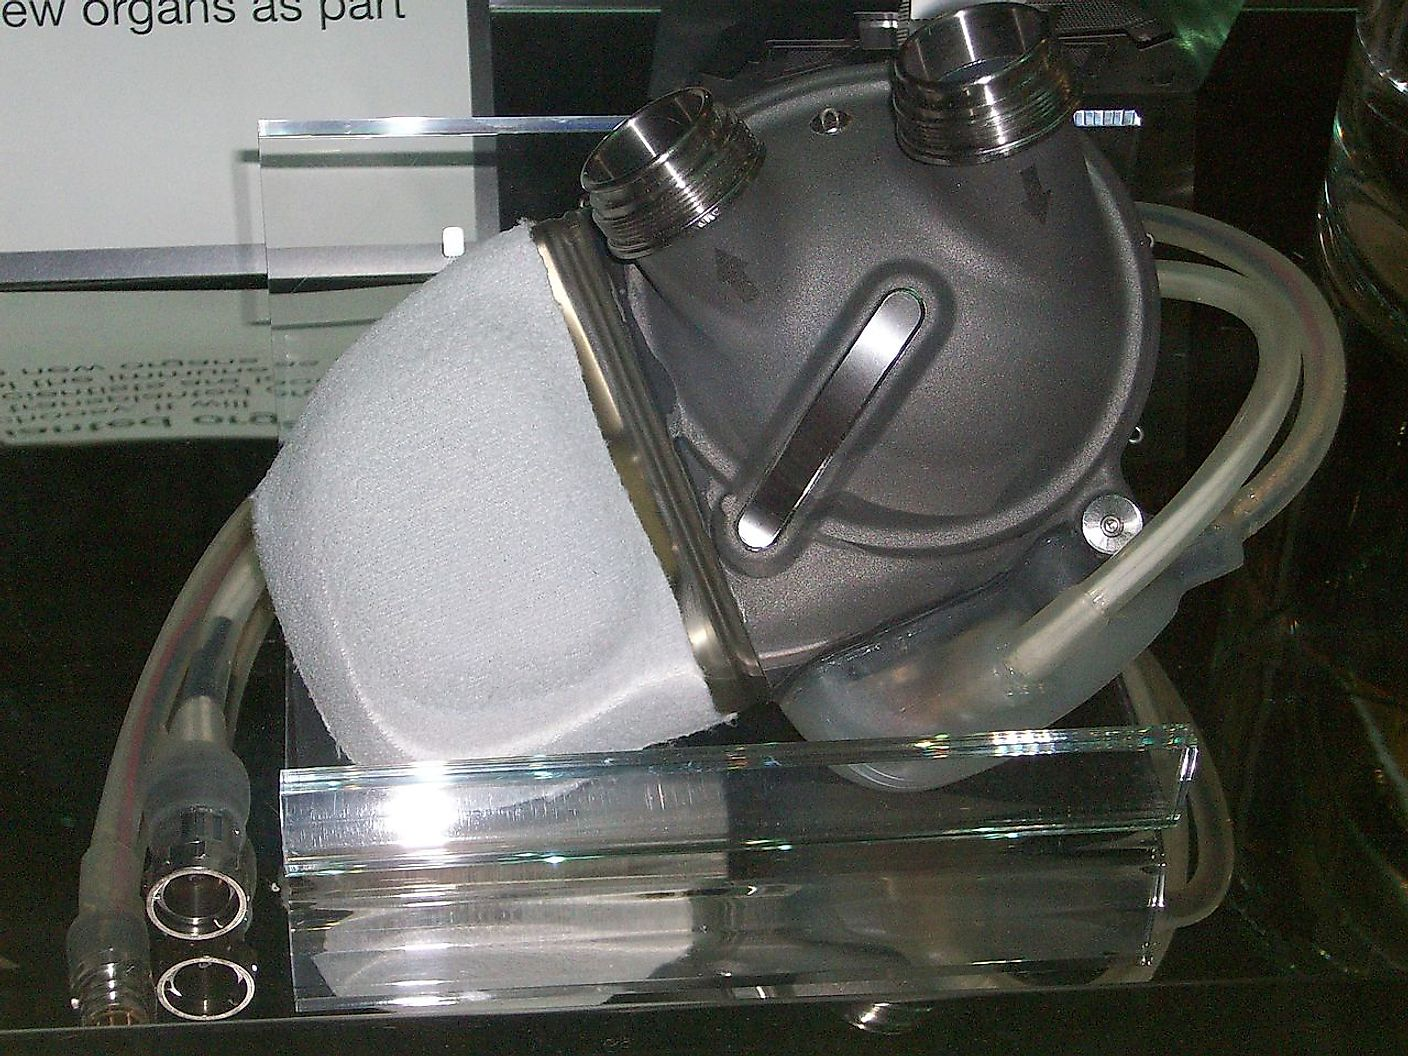 An image of an artificial heart exhibited at London science museum. Image credit: Rick Proser/Wikimedia.org